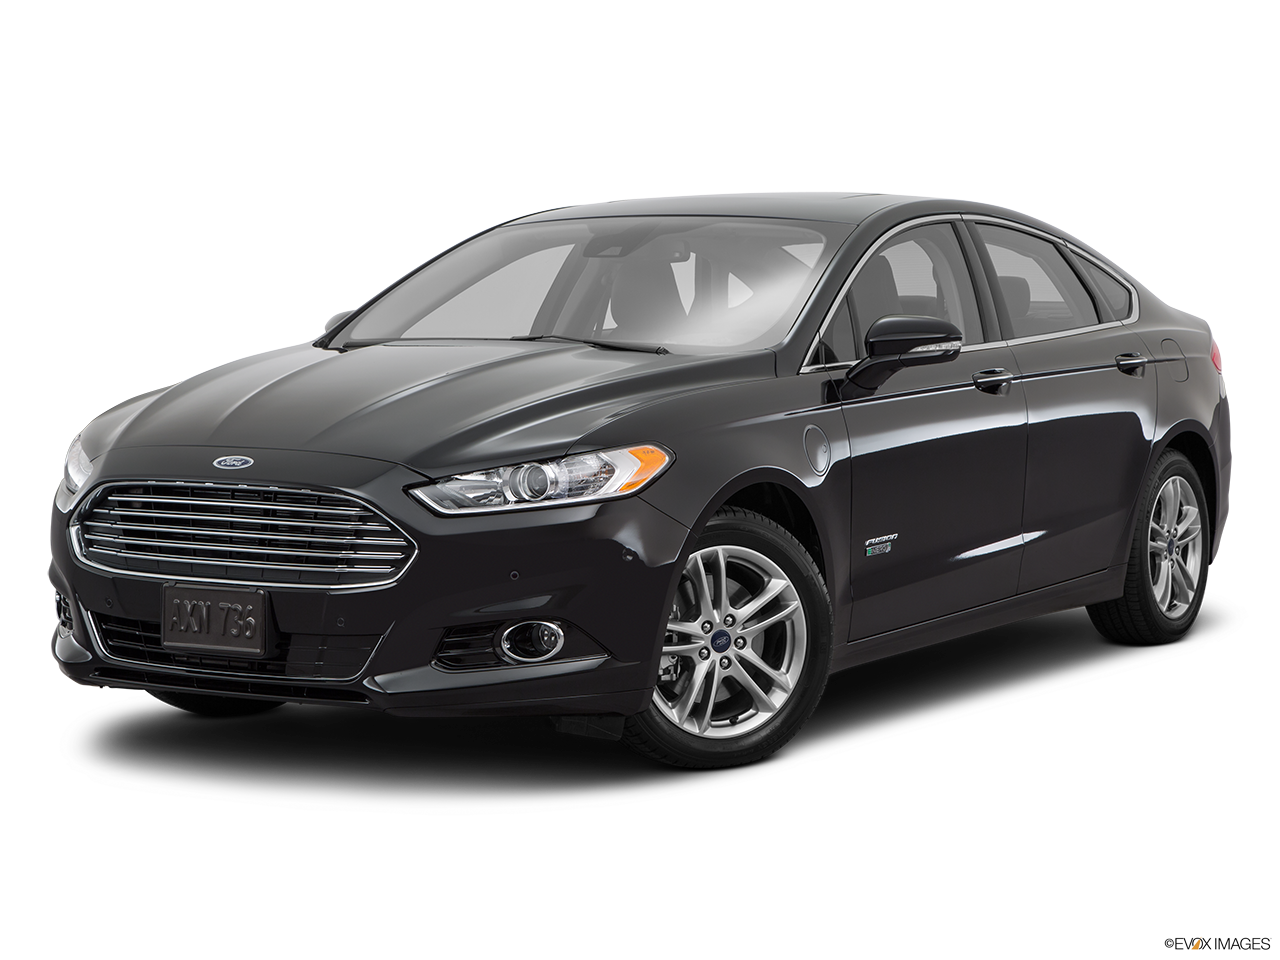 Test Drive A 2016 Ford Fusion Energi at Franklin Ford in Franklin